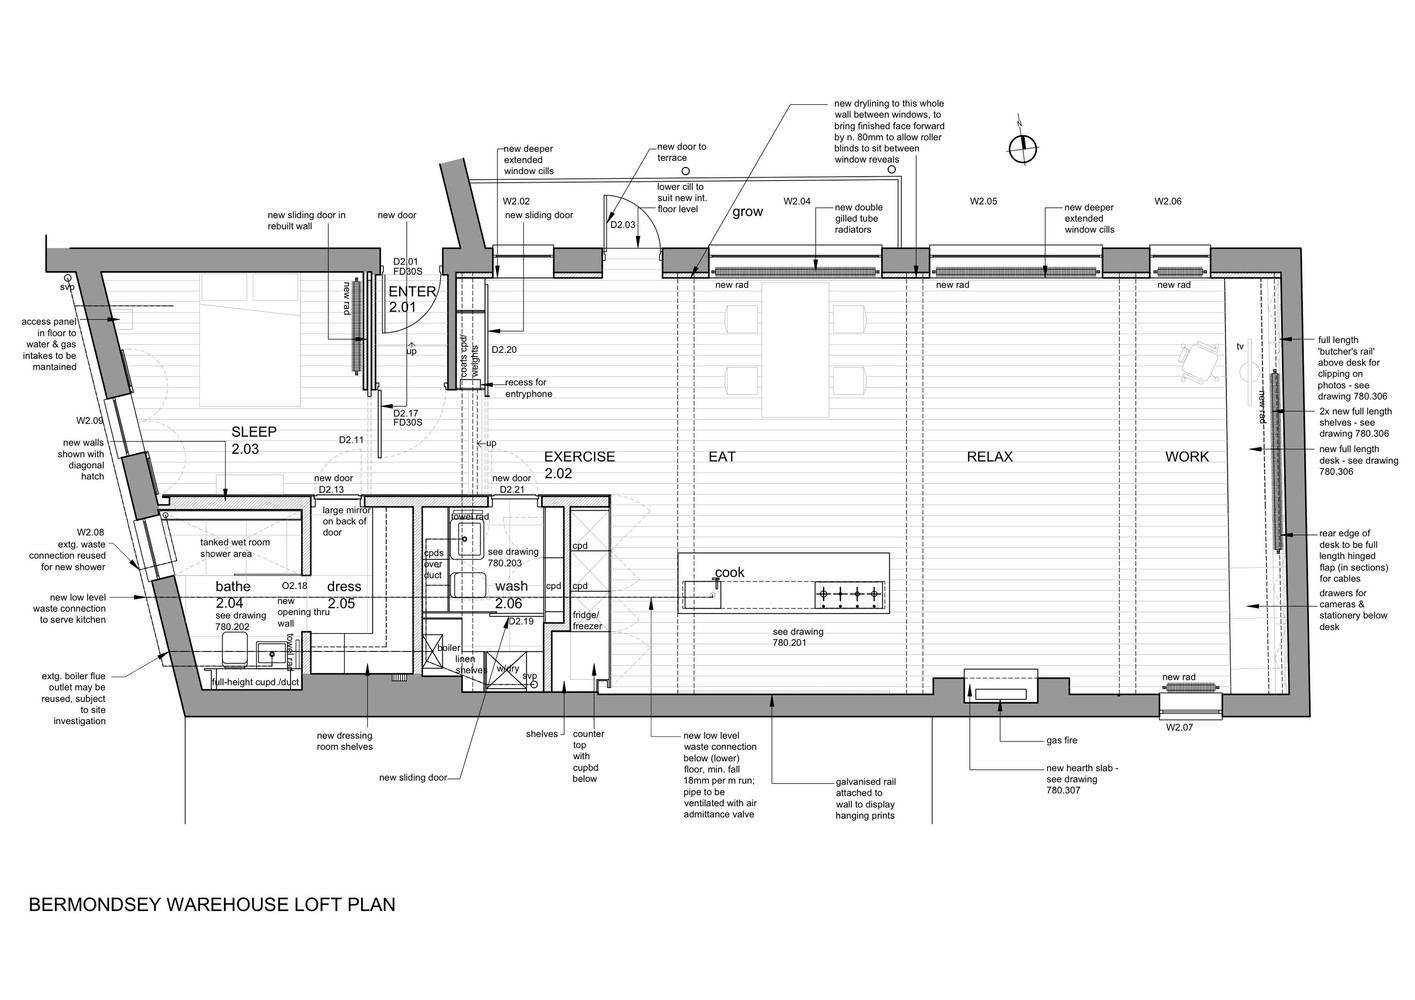 Bermondsey Warehouse Loft Apartment,Floor Plan